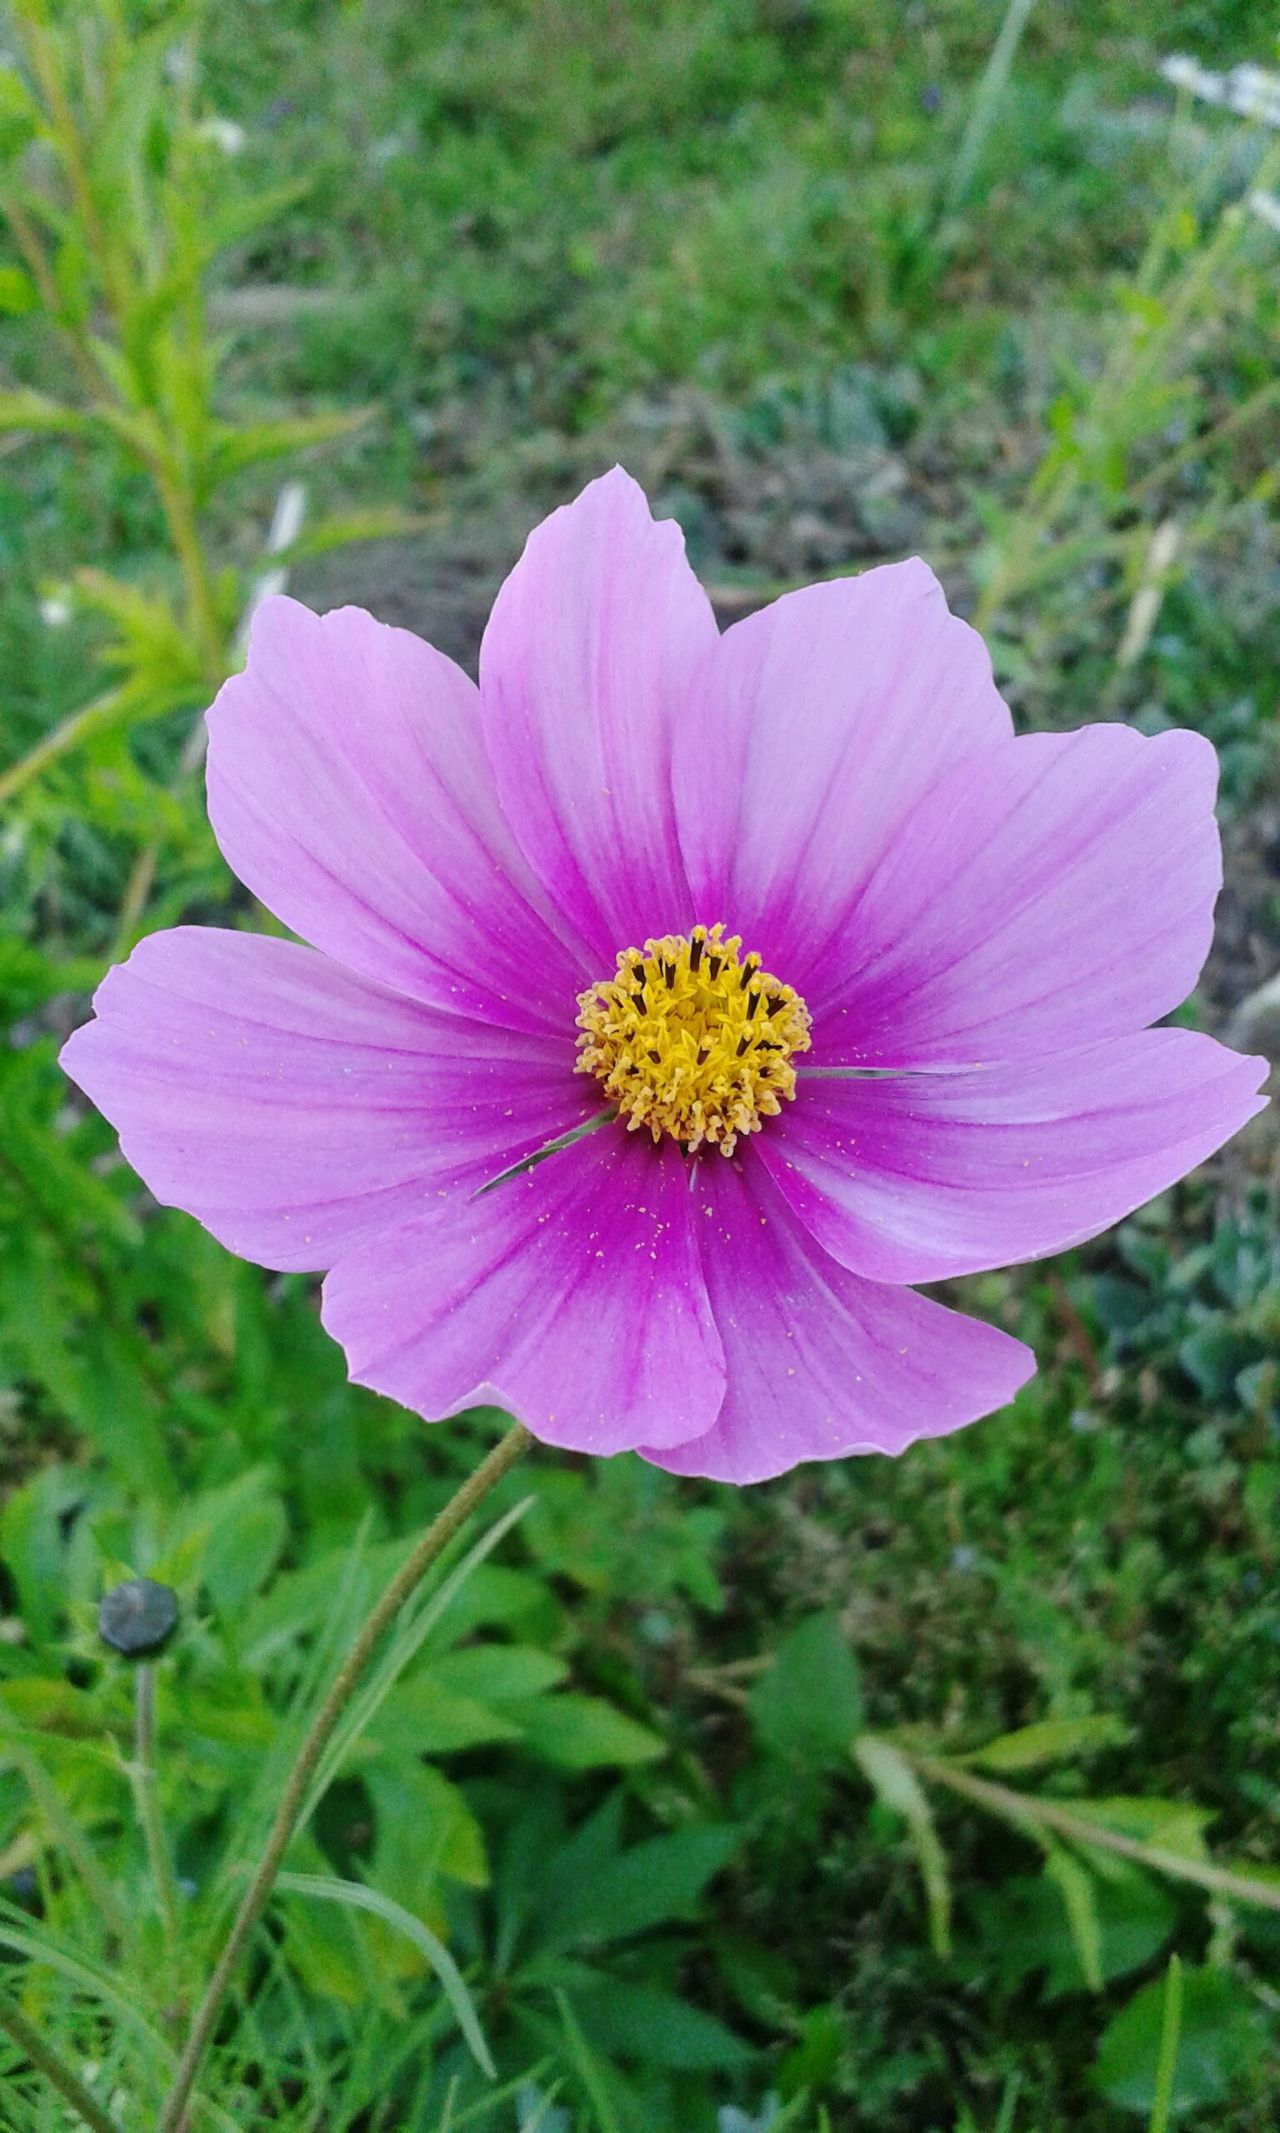 Flower Fragility Petal Flower Head Freshness Beauty In Nature Pink Color Nature Growth Purple Blooming Pollen Plant Close-up No People Outdoors Day